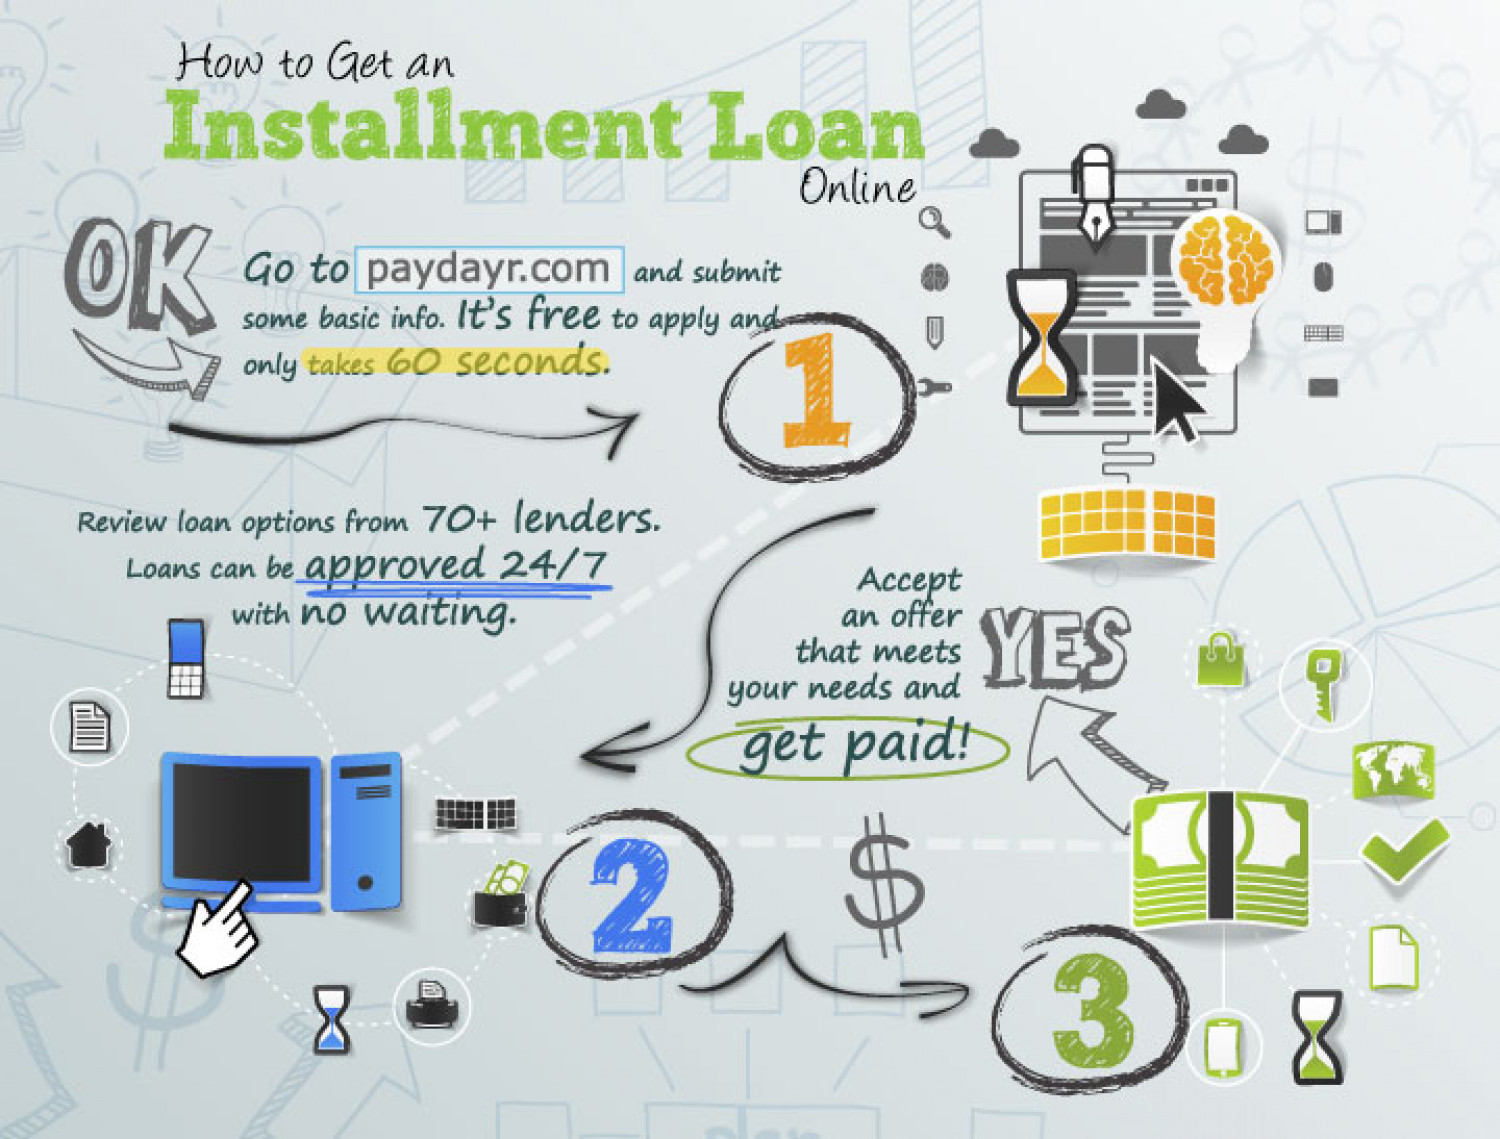 How to Get an Installment Loan Online Infographic